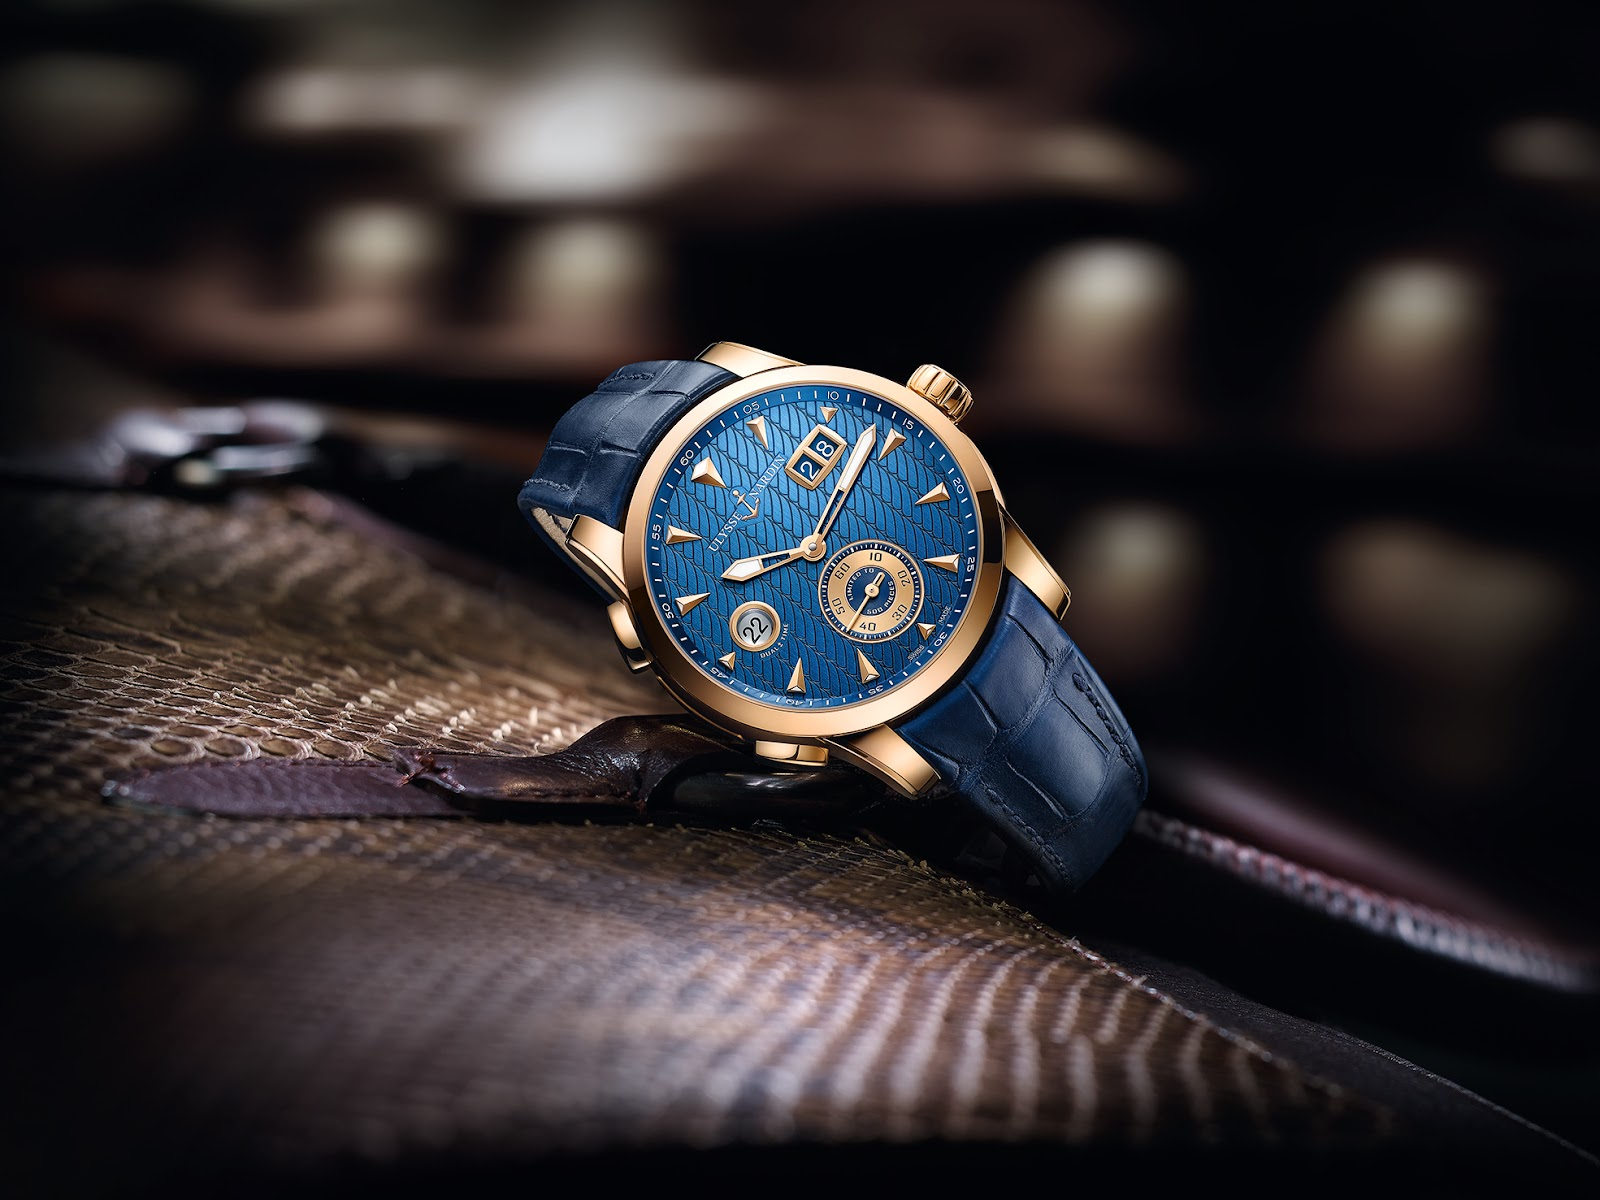 Ullysse Nardin Dual Time Manufacture